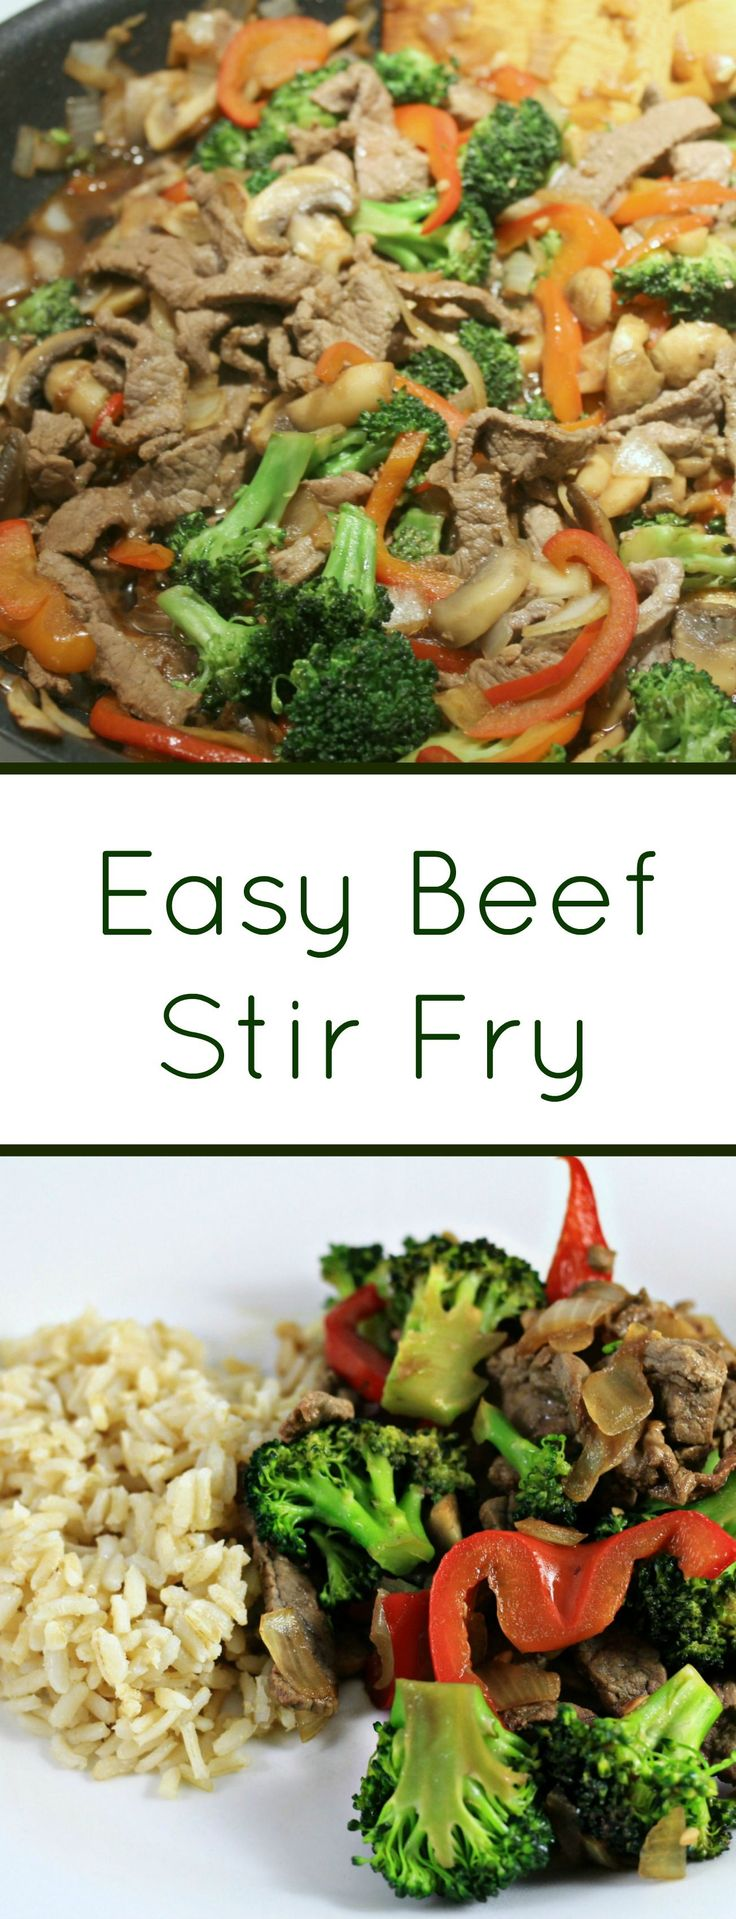 My Beef Stir Fry is delicious, easy and healthy. It's 21 day fix approved and ready in 15 minutes. Give it a try!